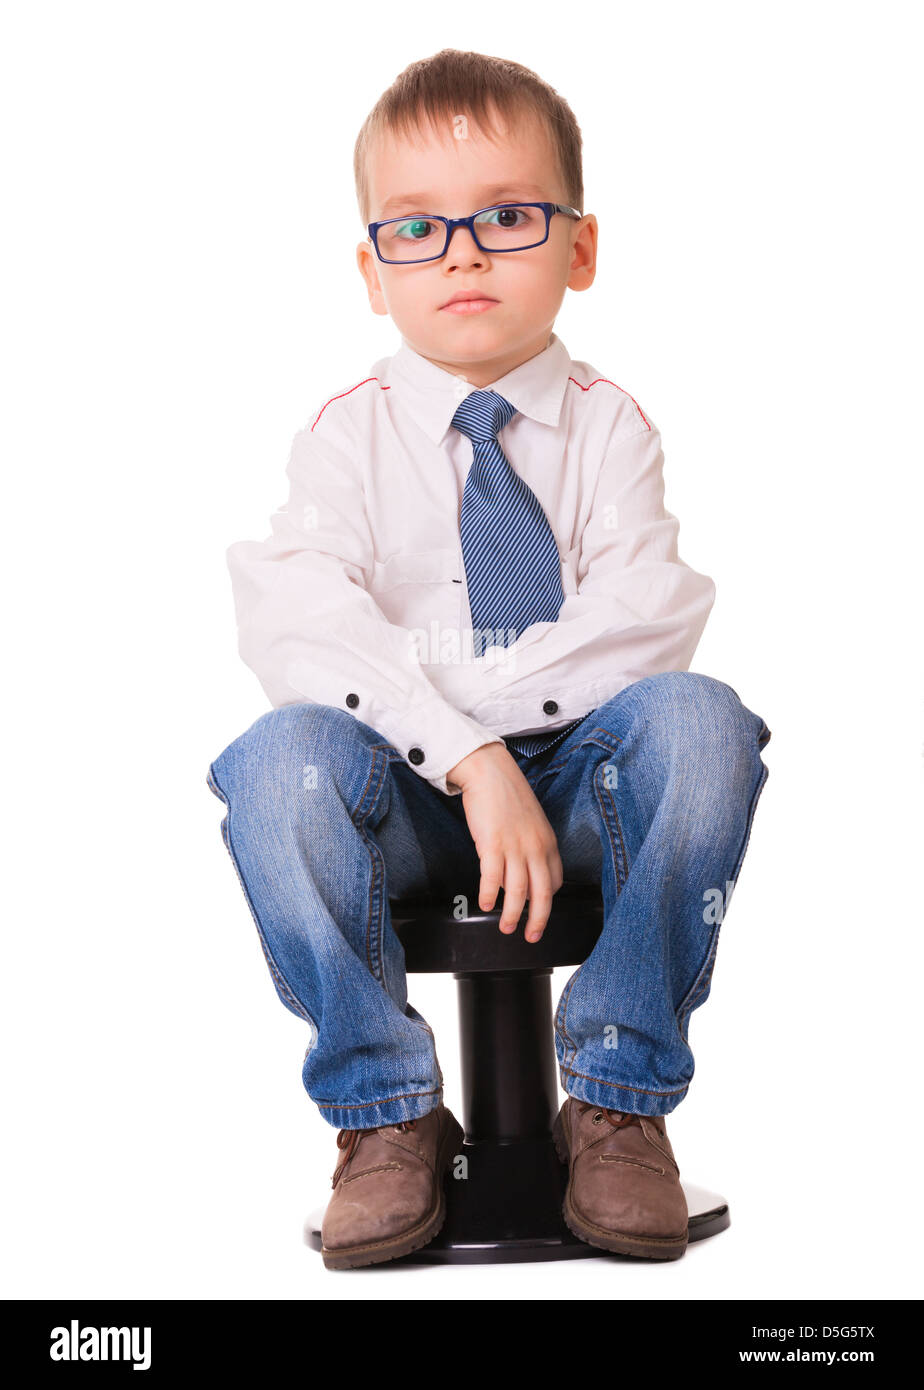 Black child sitting in chair - Small Sad Boy In Glasses Shirt And Jeans Sitting On The Black Chair Isolated On White Background